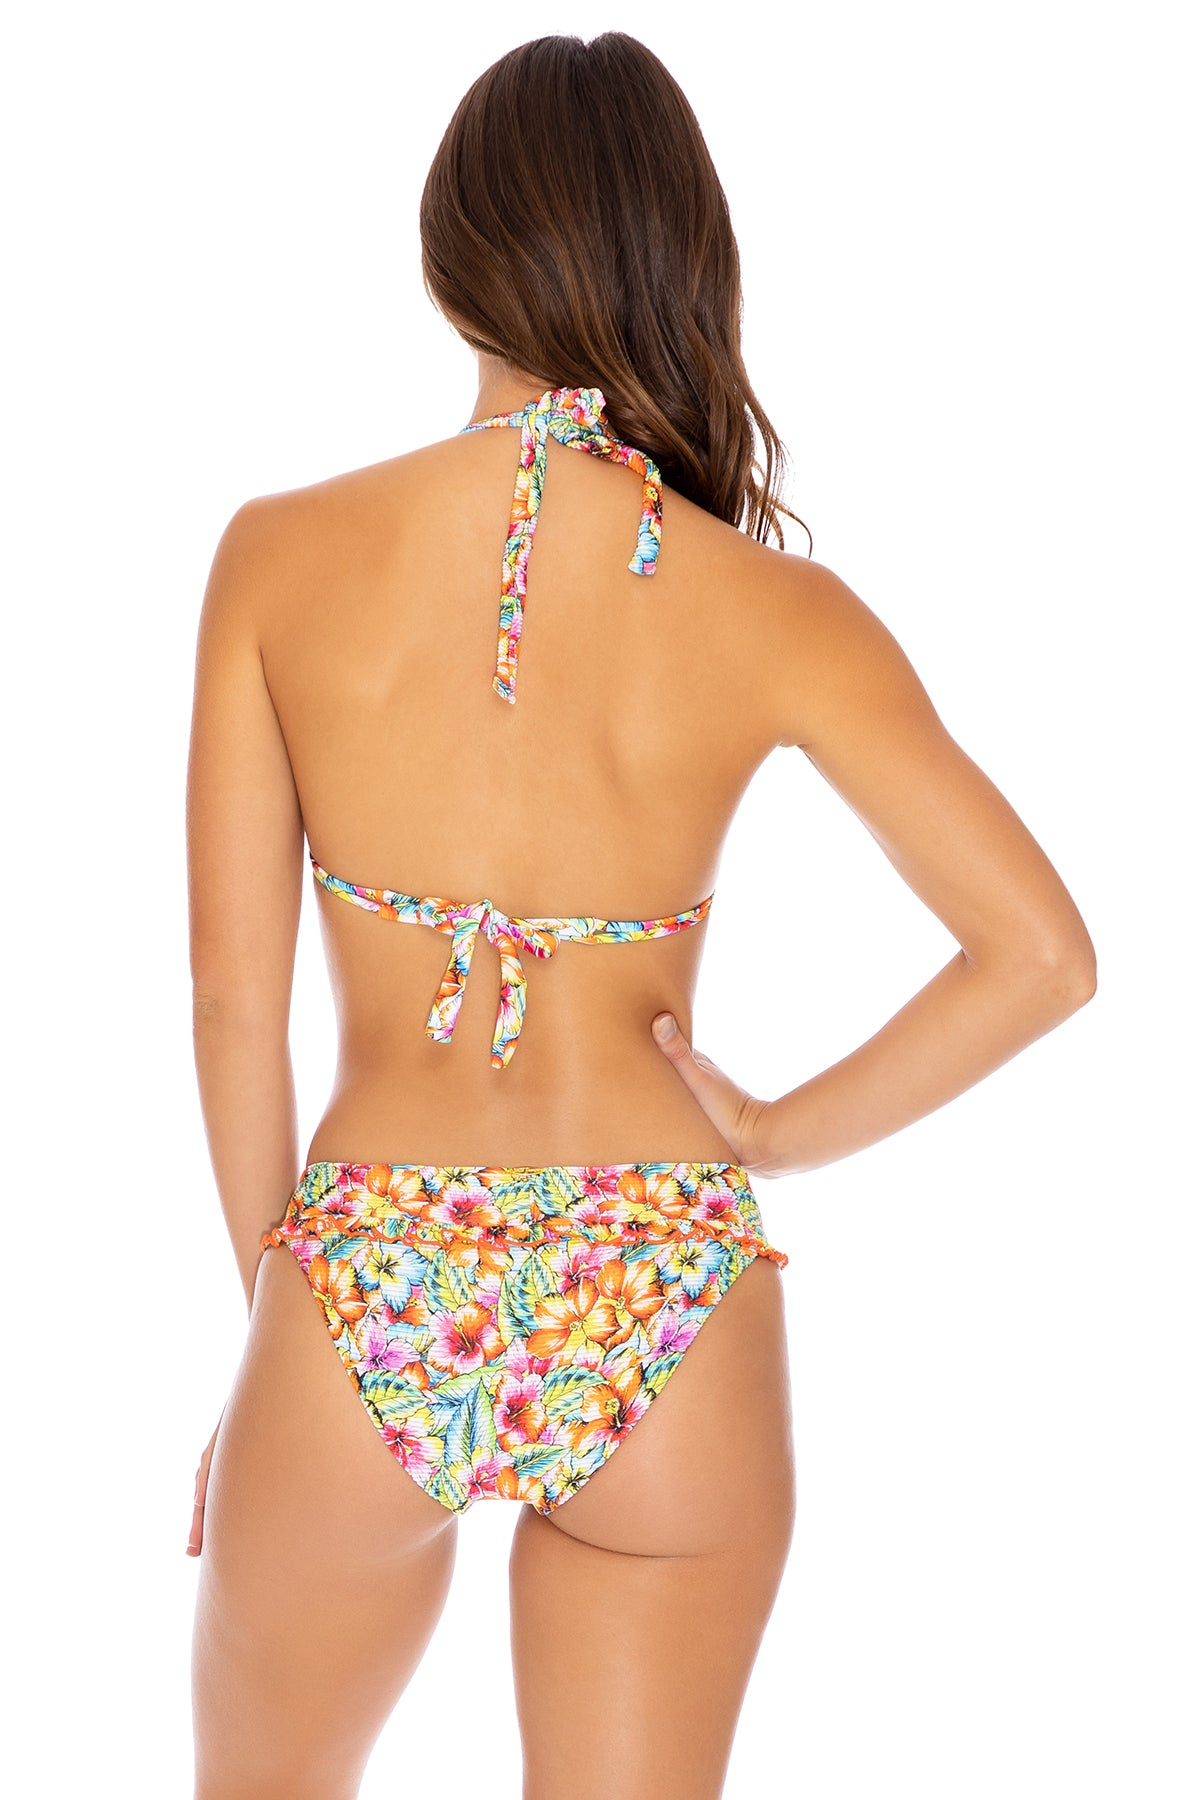 WILD FLOWER - Triangle Halter Top & Banded Full Bottom • Multicolor